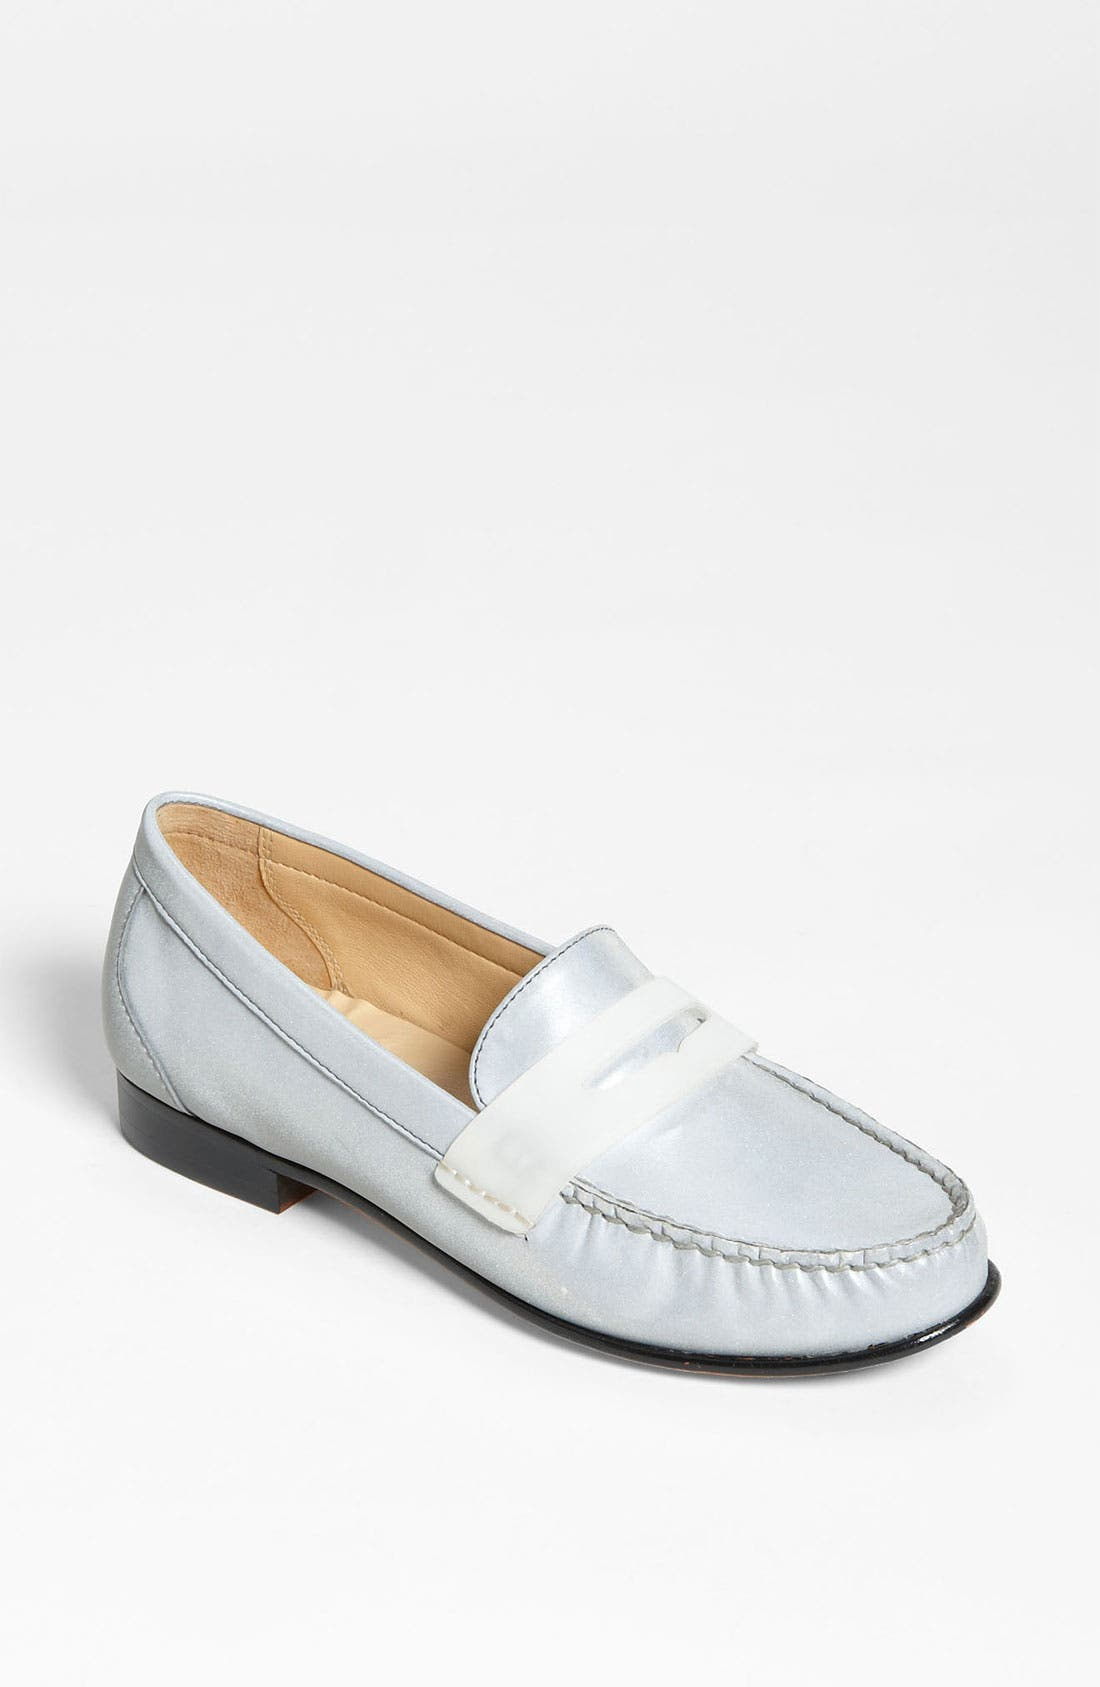 Main Image - Cole Haan 'Monroe Reflective' Loafer